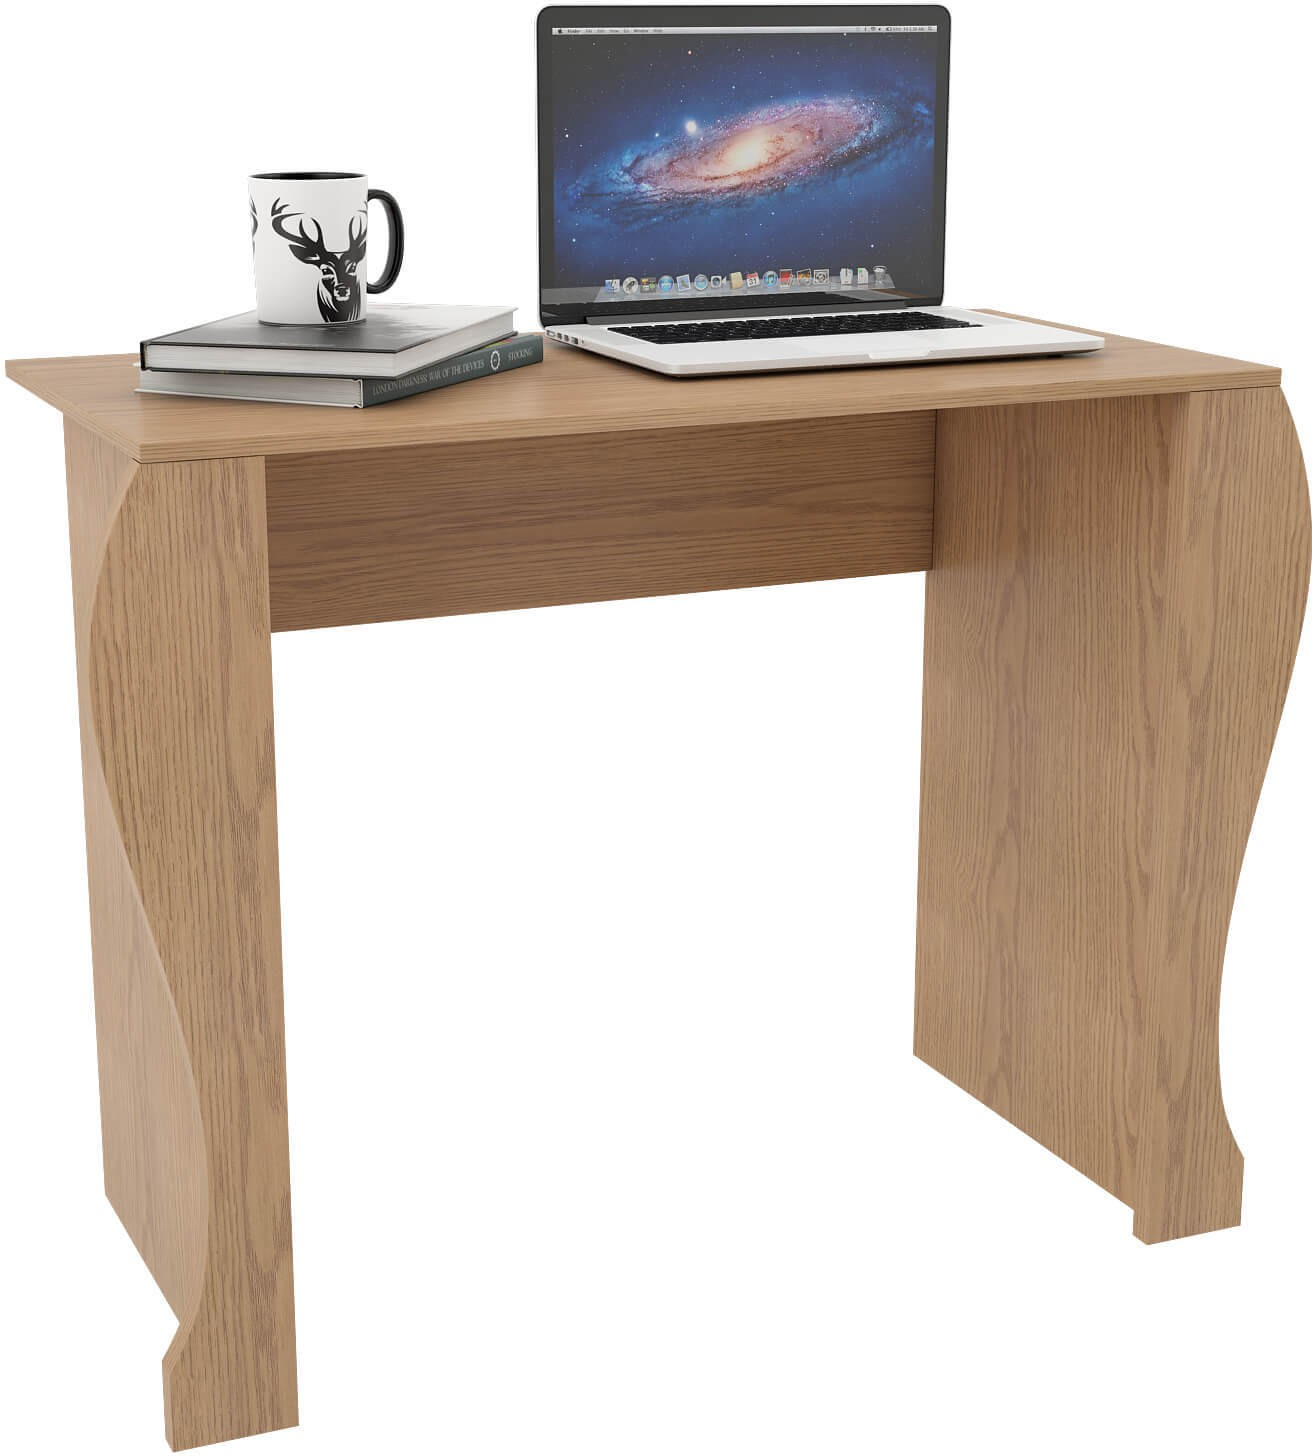 Housefull Engineered Wood Study Table